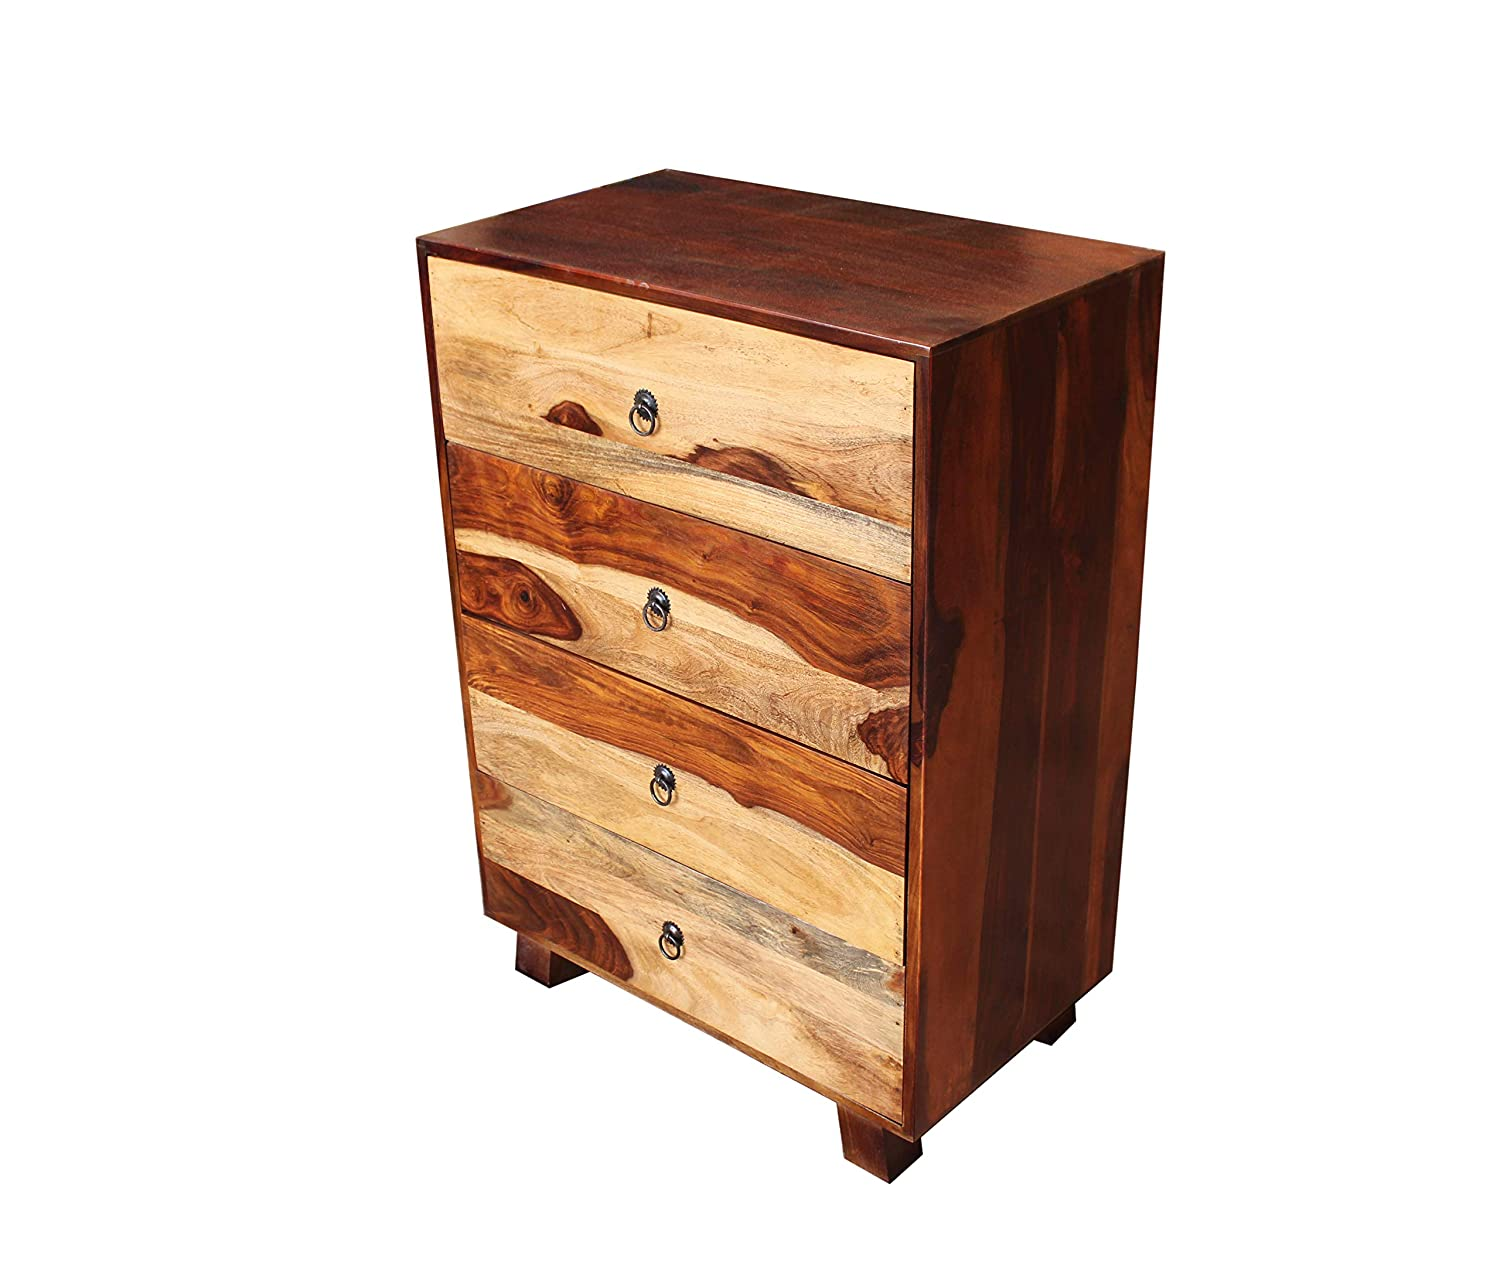 Tolmiz Chest of Four Drawers in Provincial Teak & Natural Finish by DHI Woodcrafts